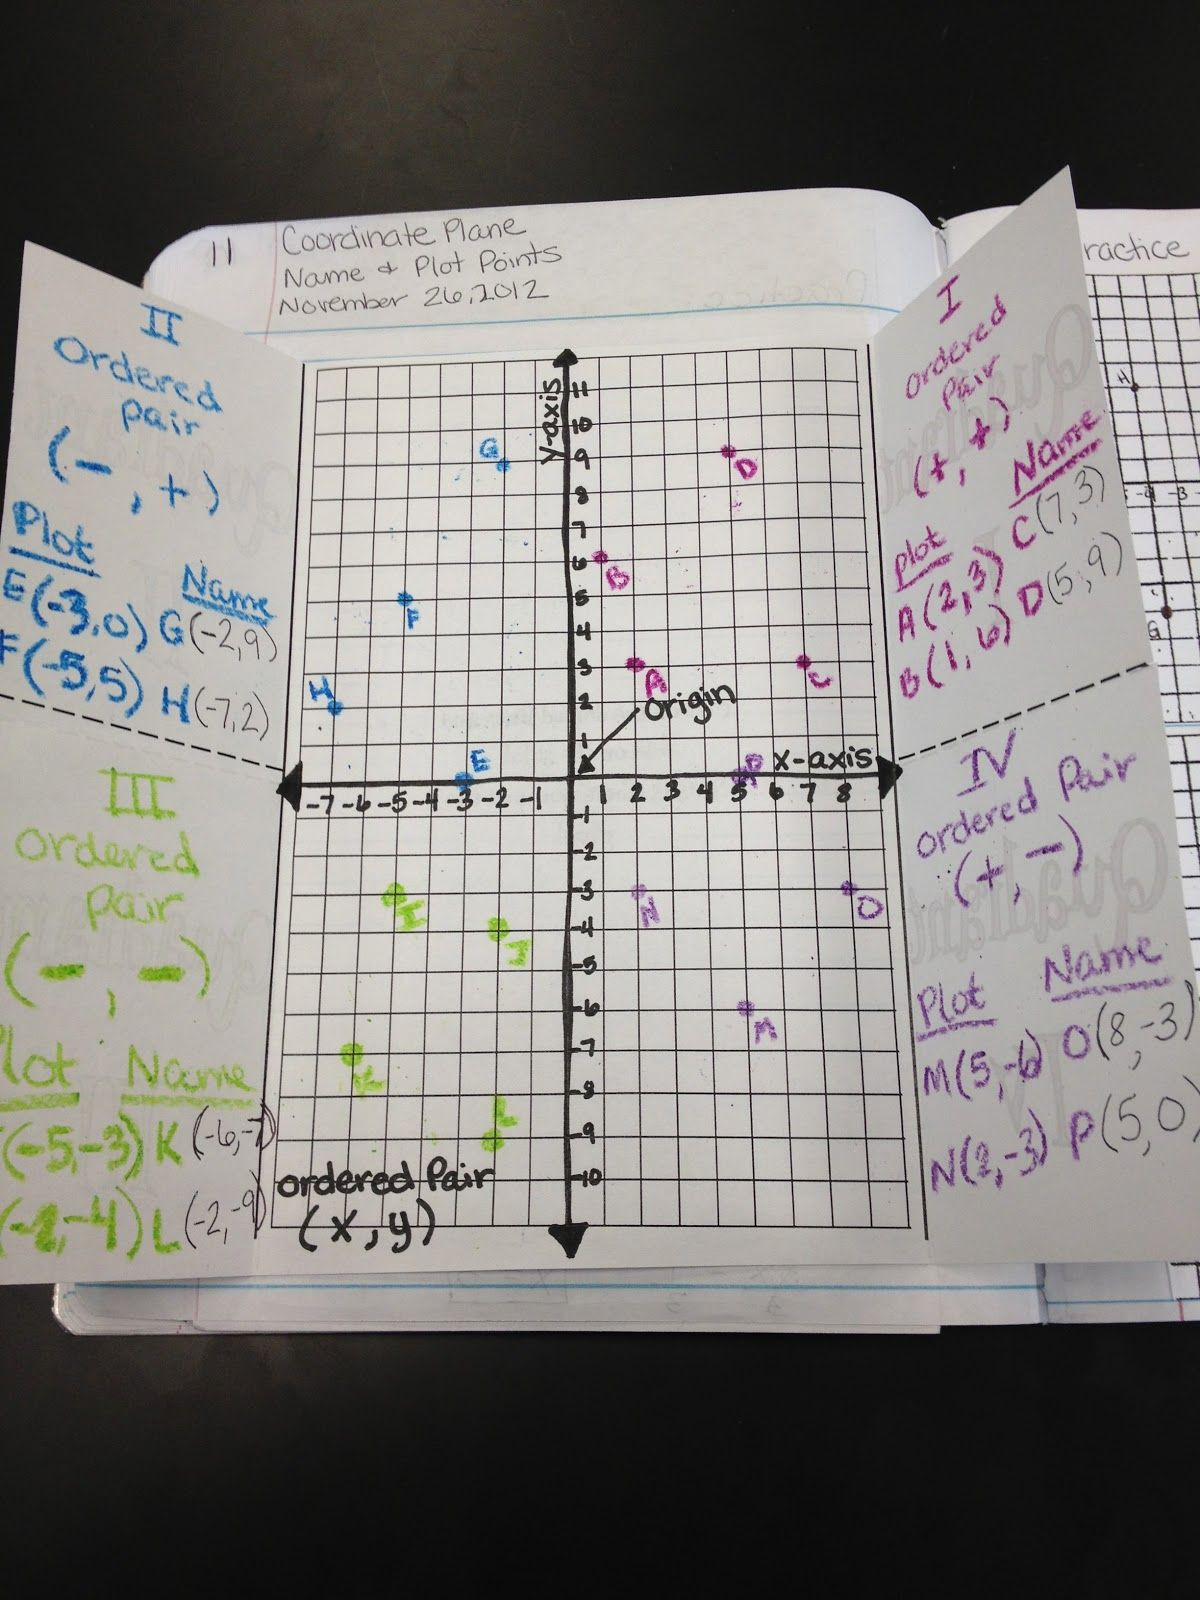 Coordinate Plane Worksheets Middle School Teaching In Special Education the Coordinate Plane